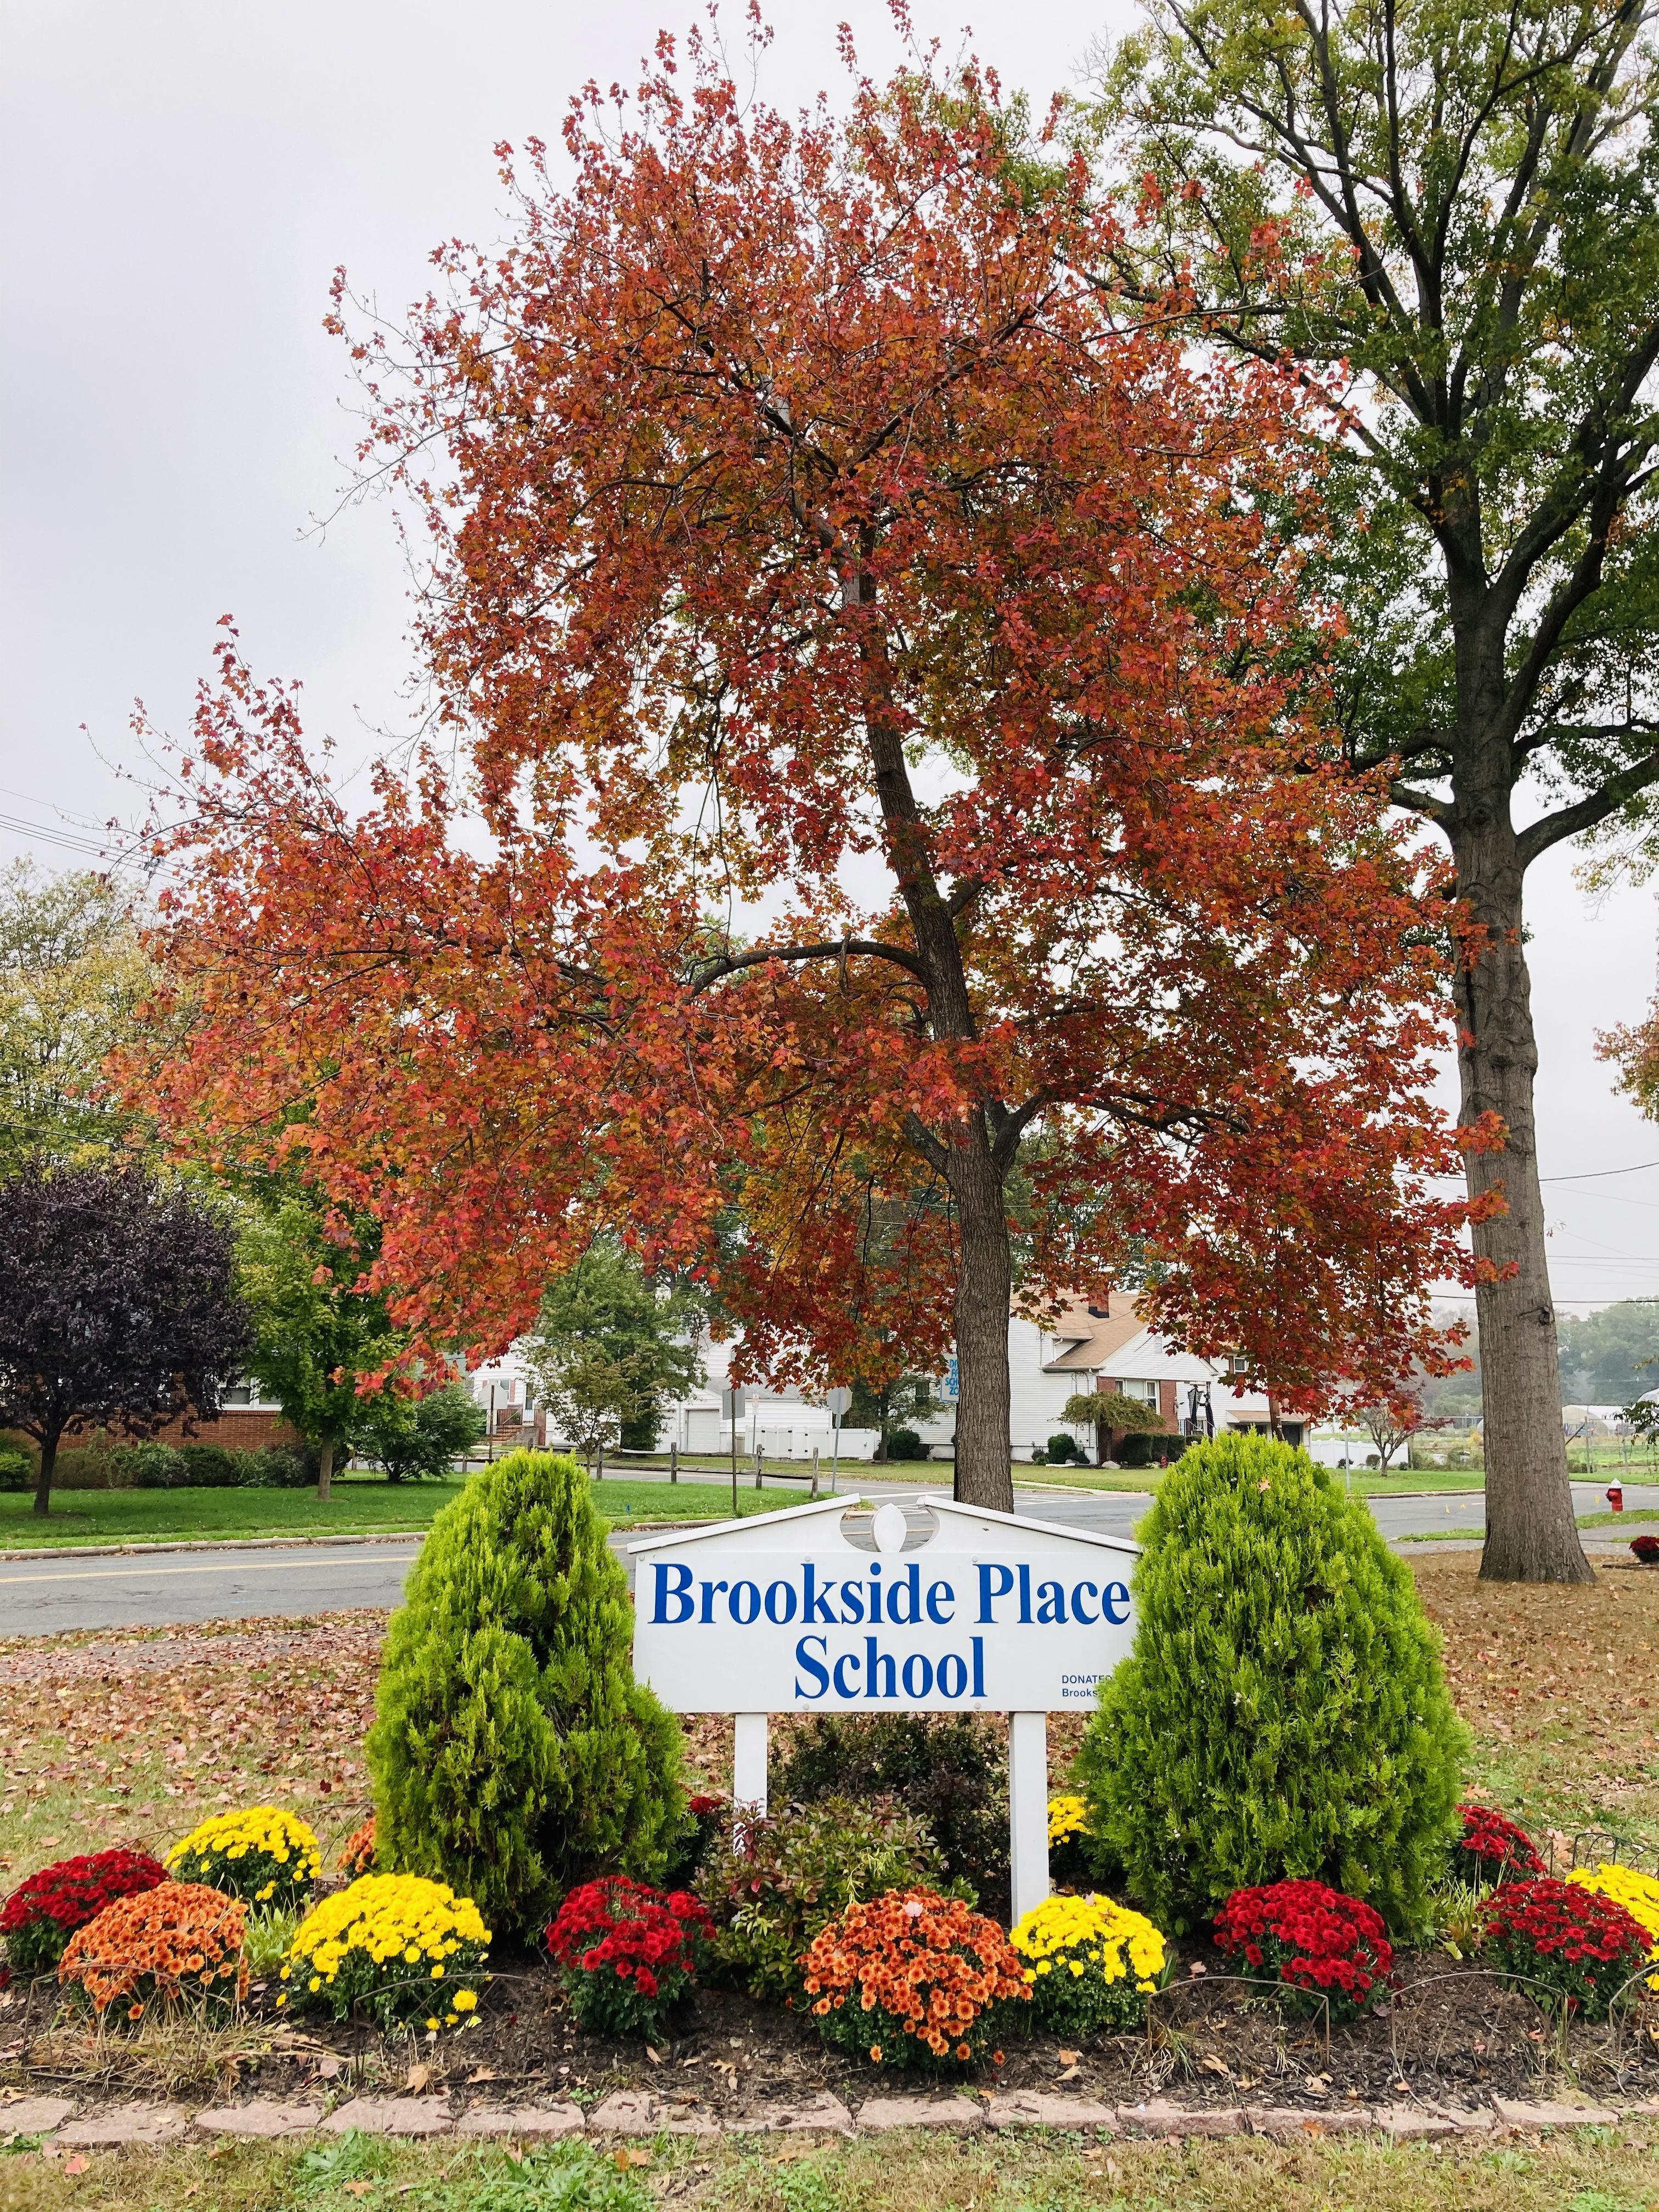 BPS School Sign with Autumn Tree